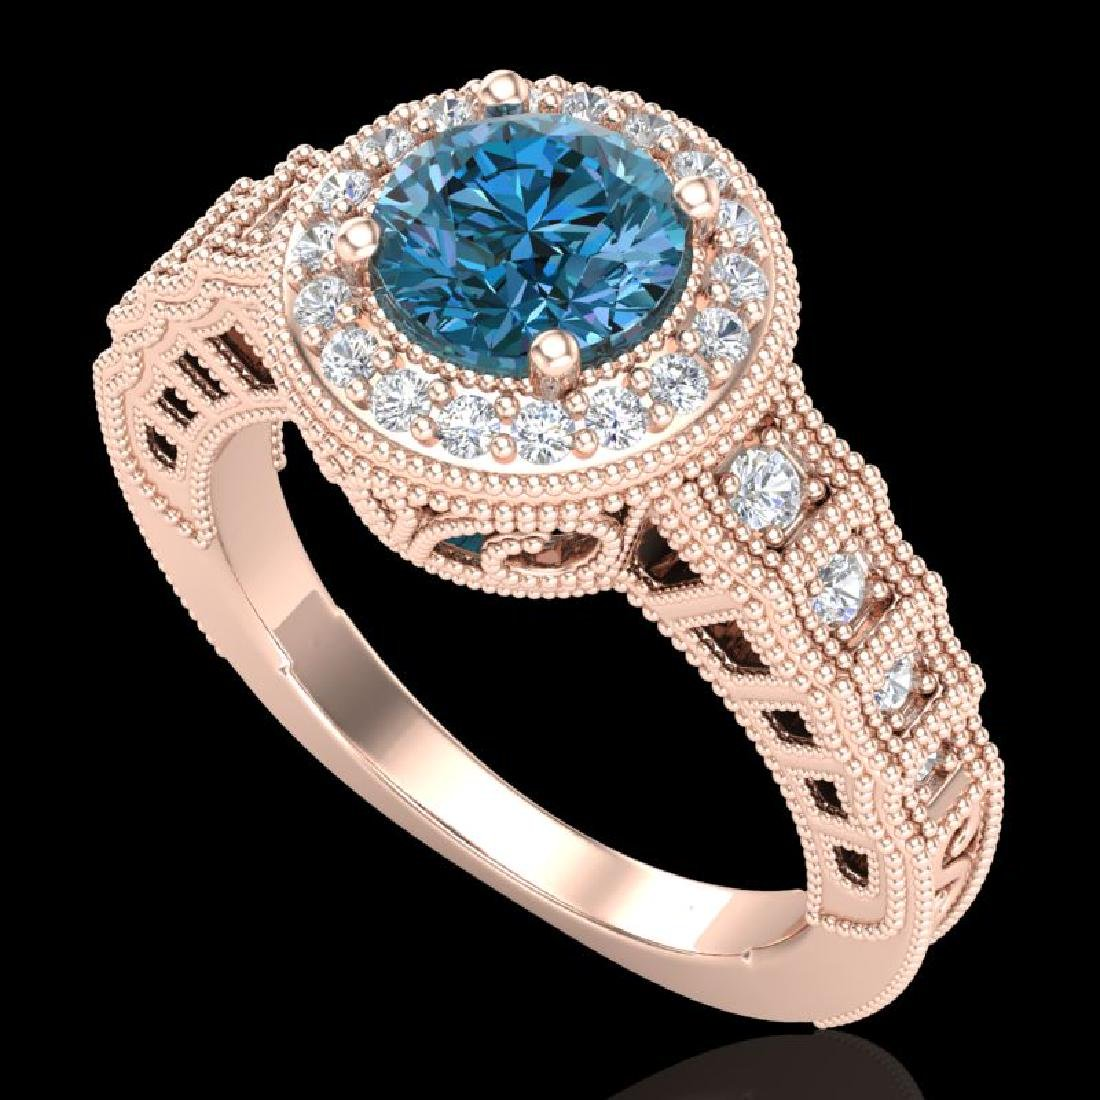 1.53 CTW Fancy Intense Blue Diamond Solitaire Art Deco